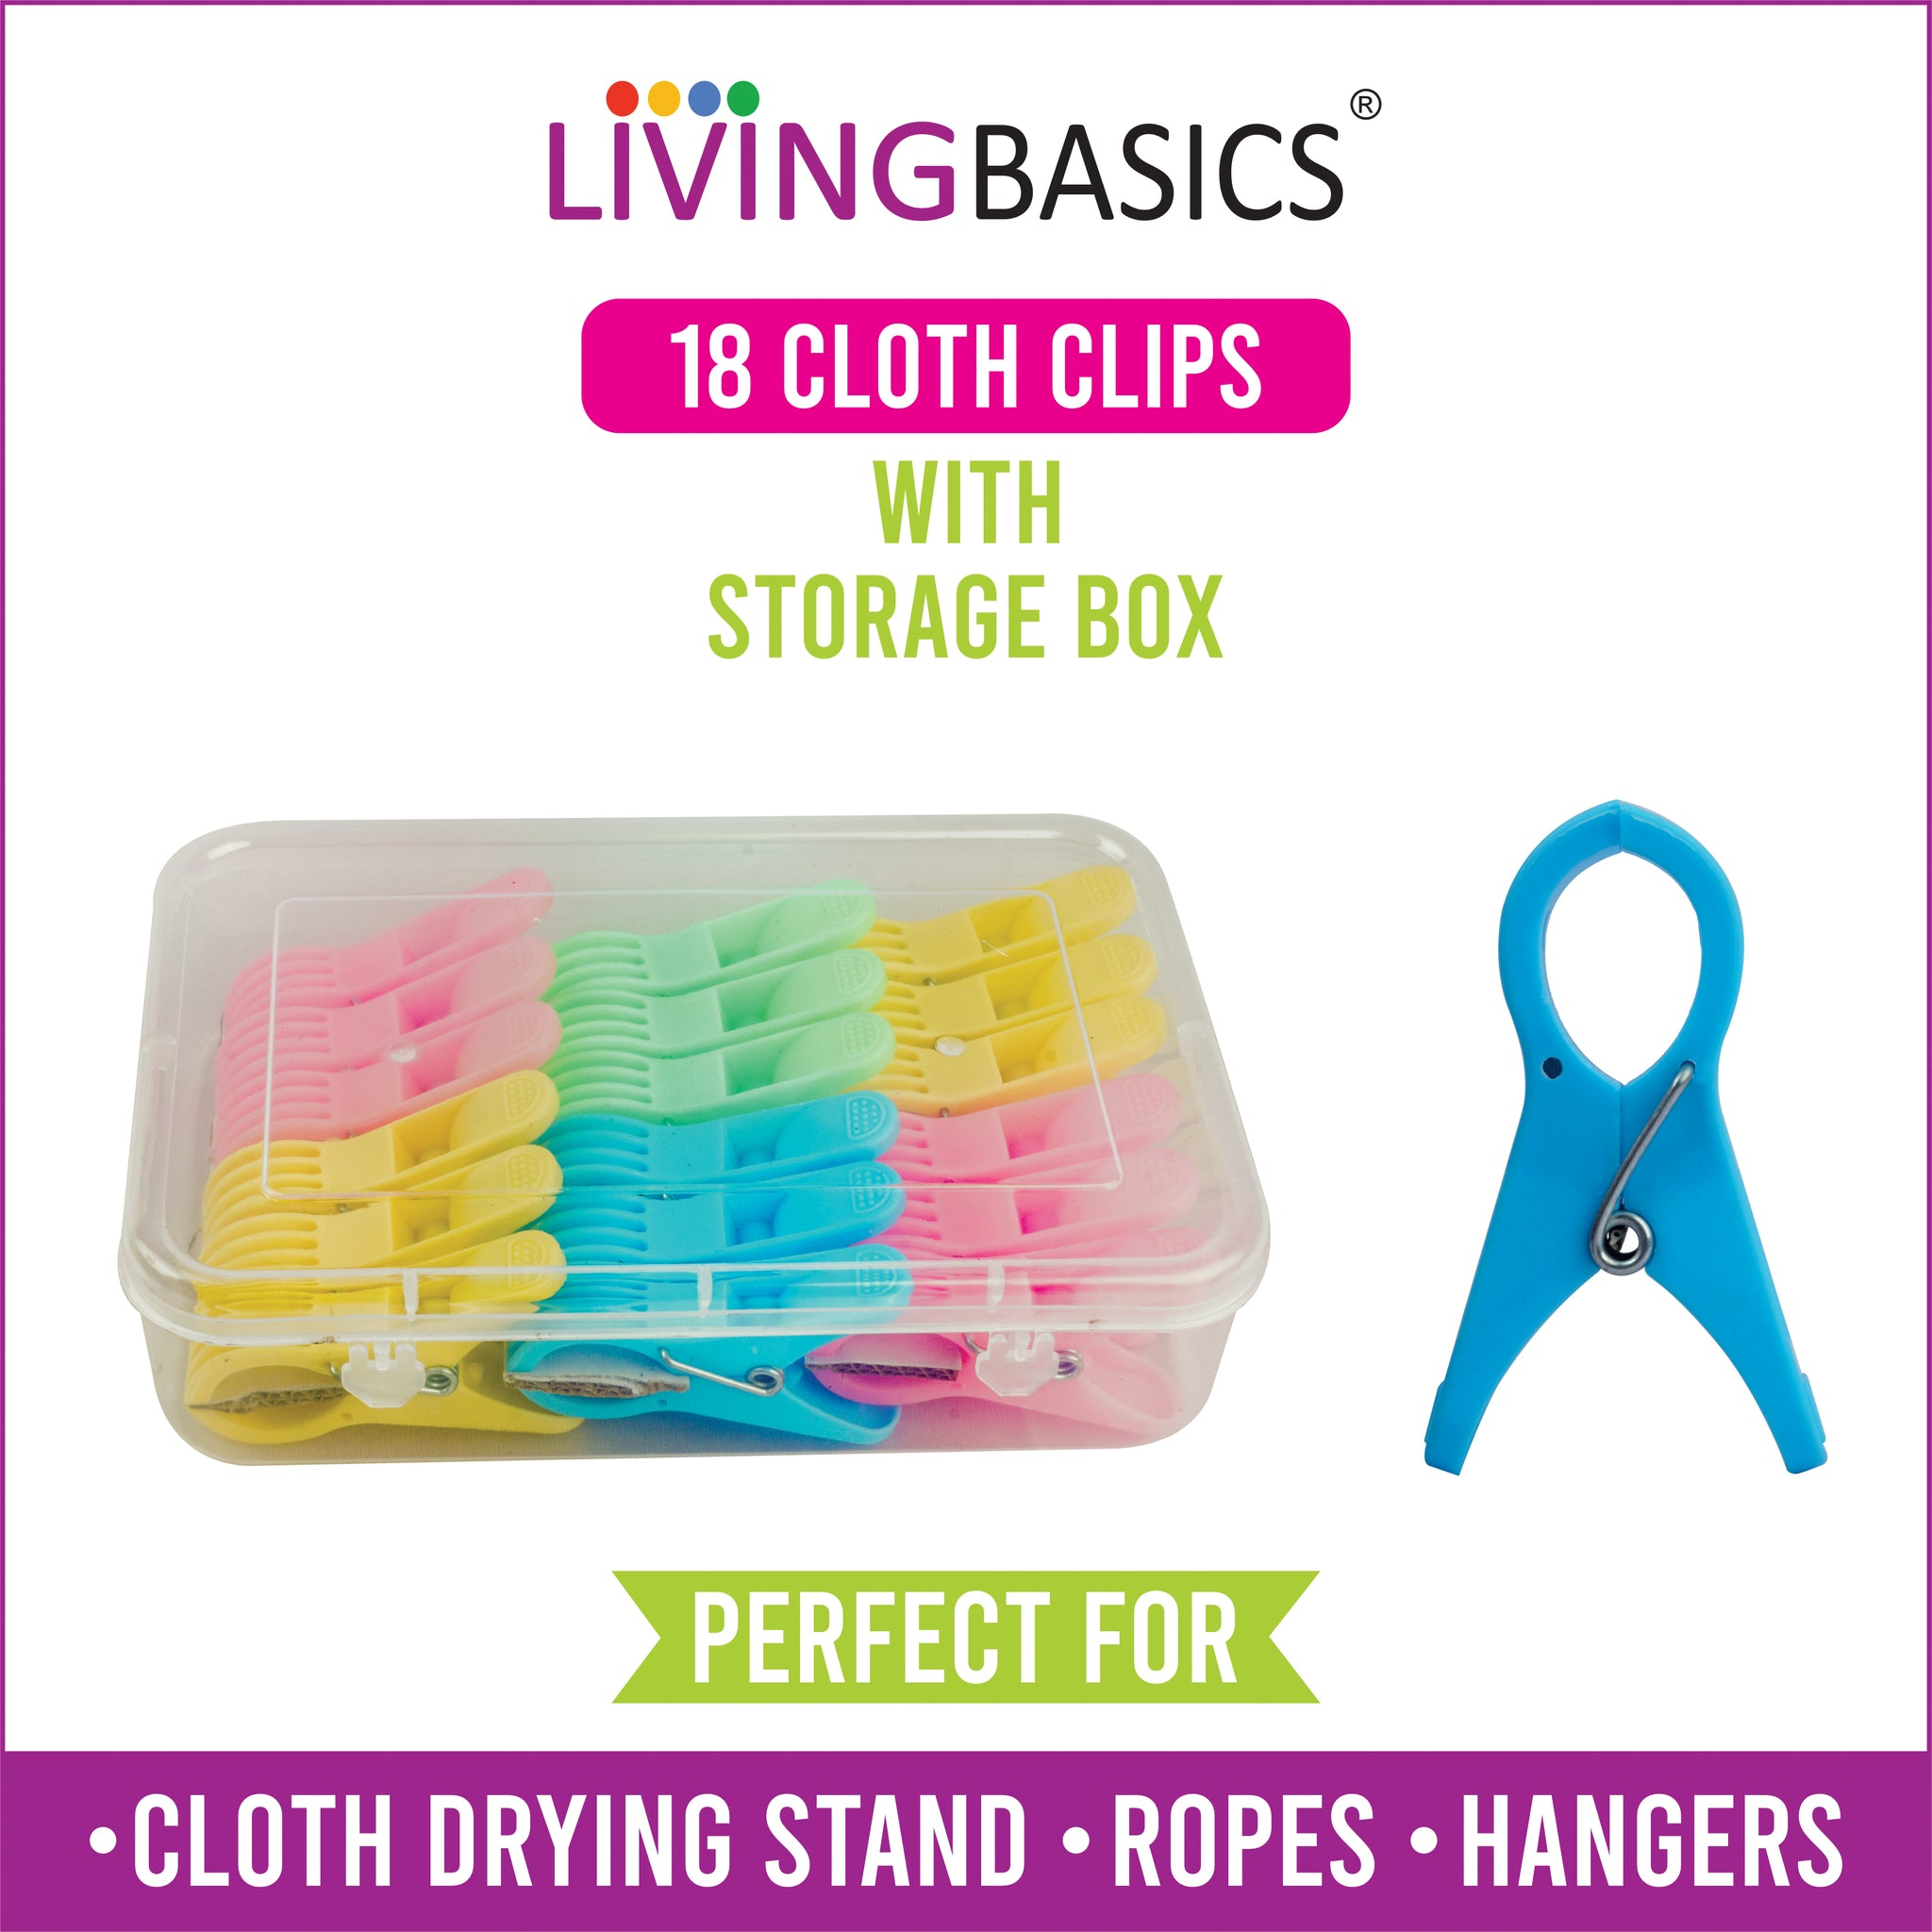 18 Rod Cloth Clips with Storage Box